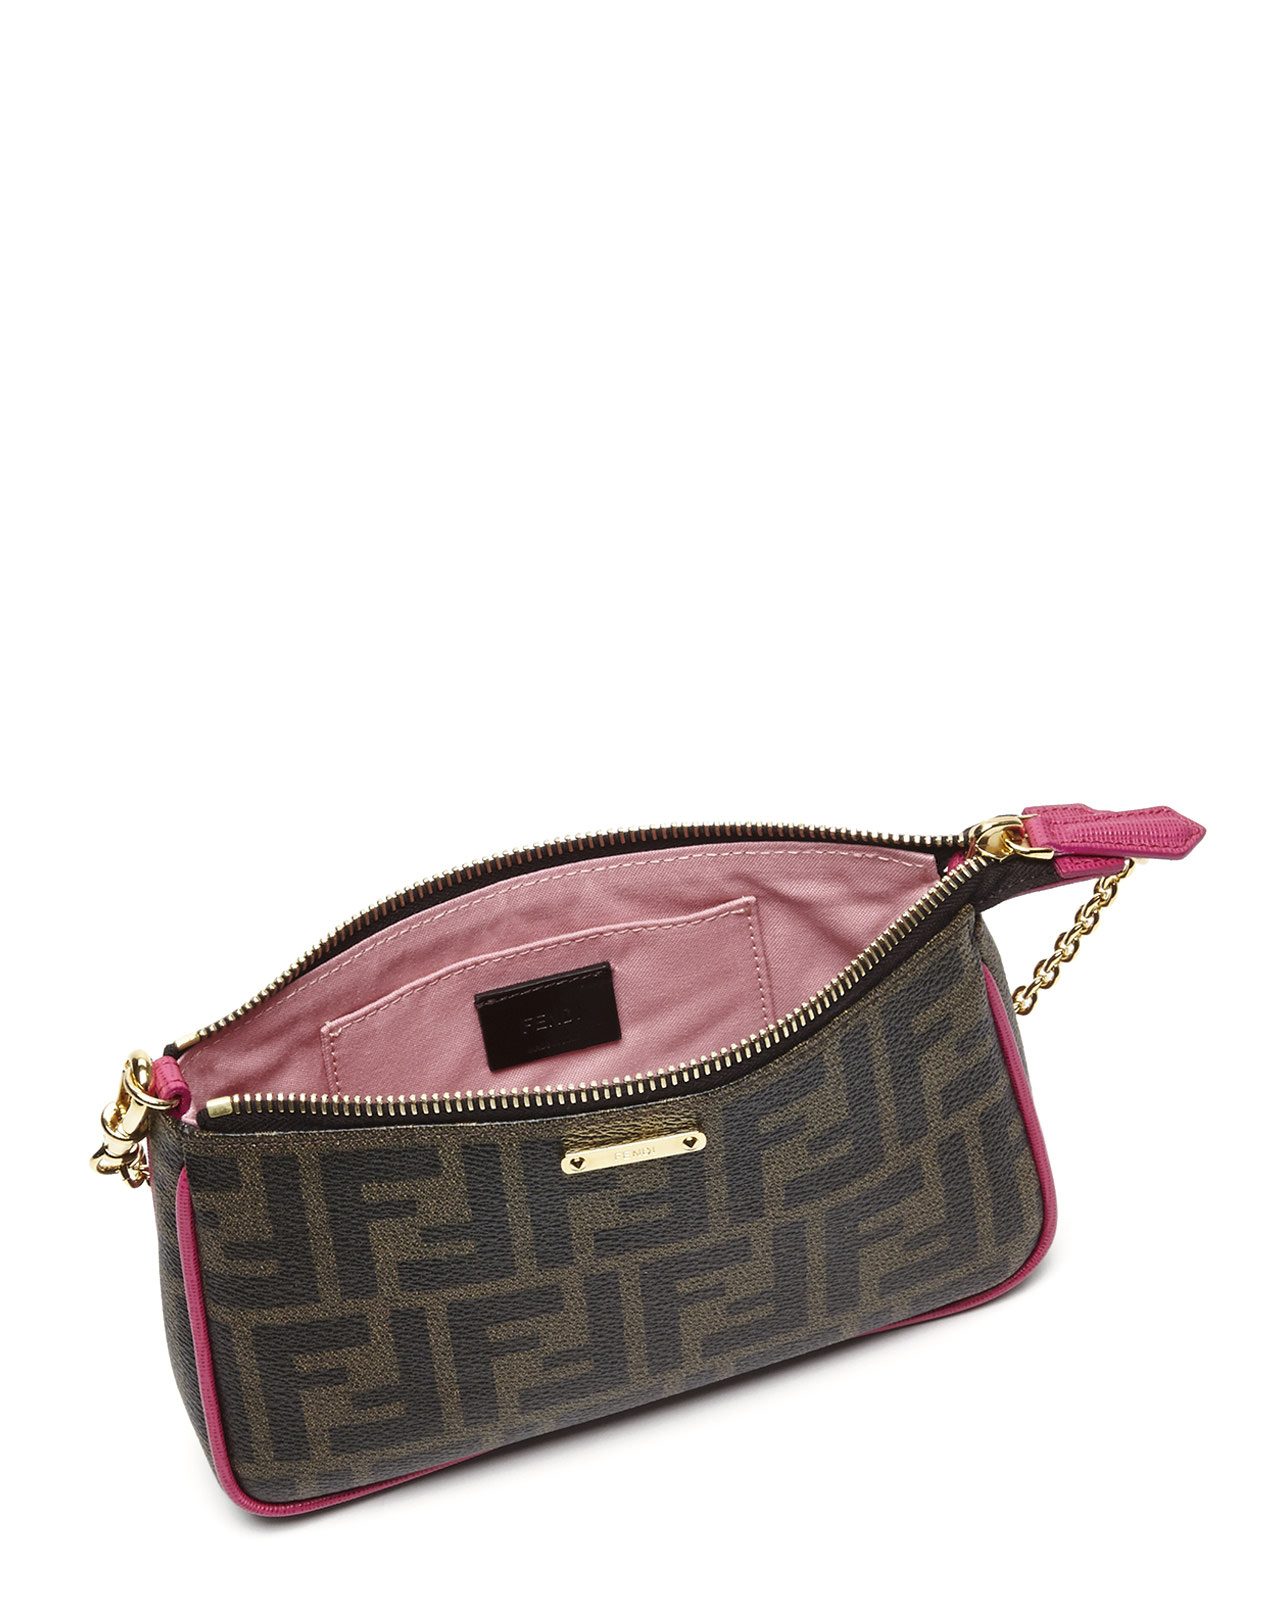 21fb64ee359 Lyst - Fendi Tobacco   Pink Zucca Small Pouch in Brown